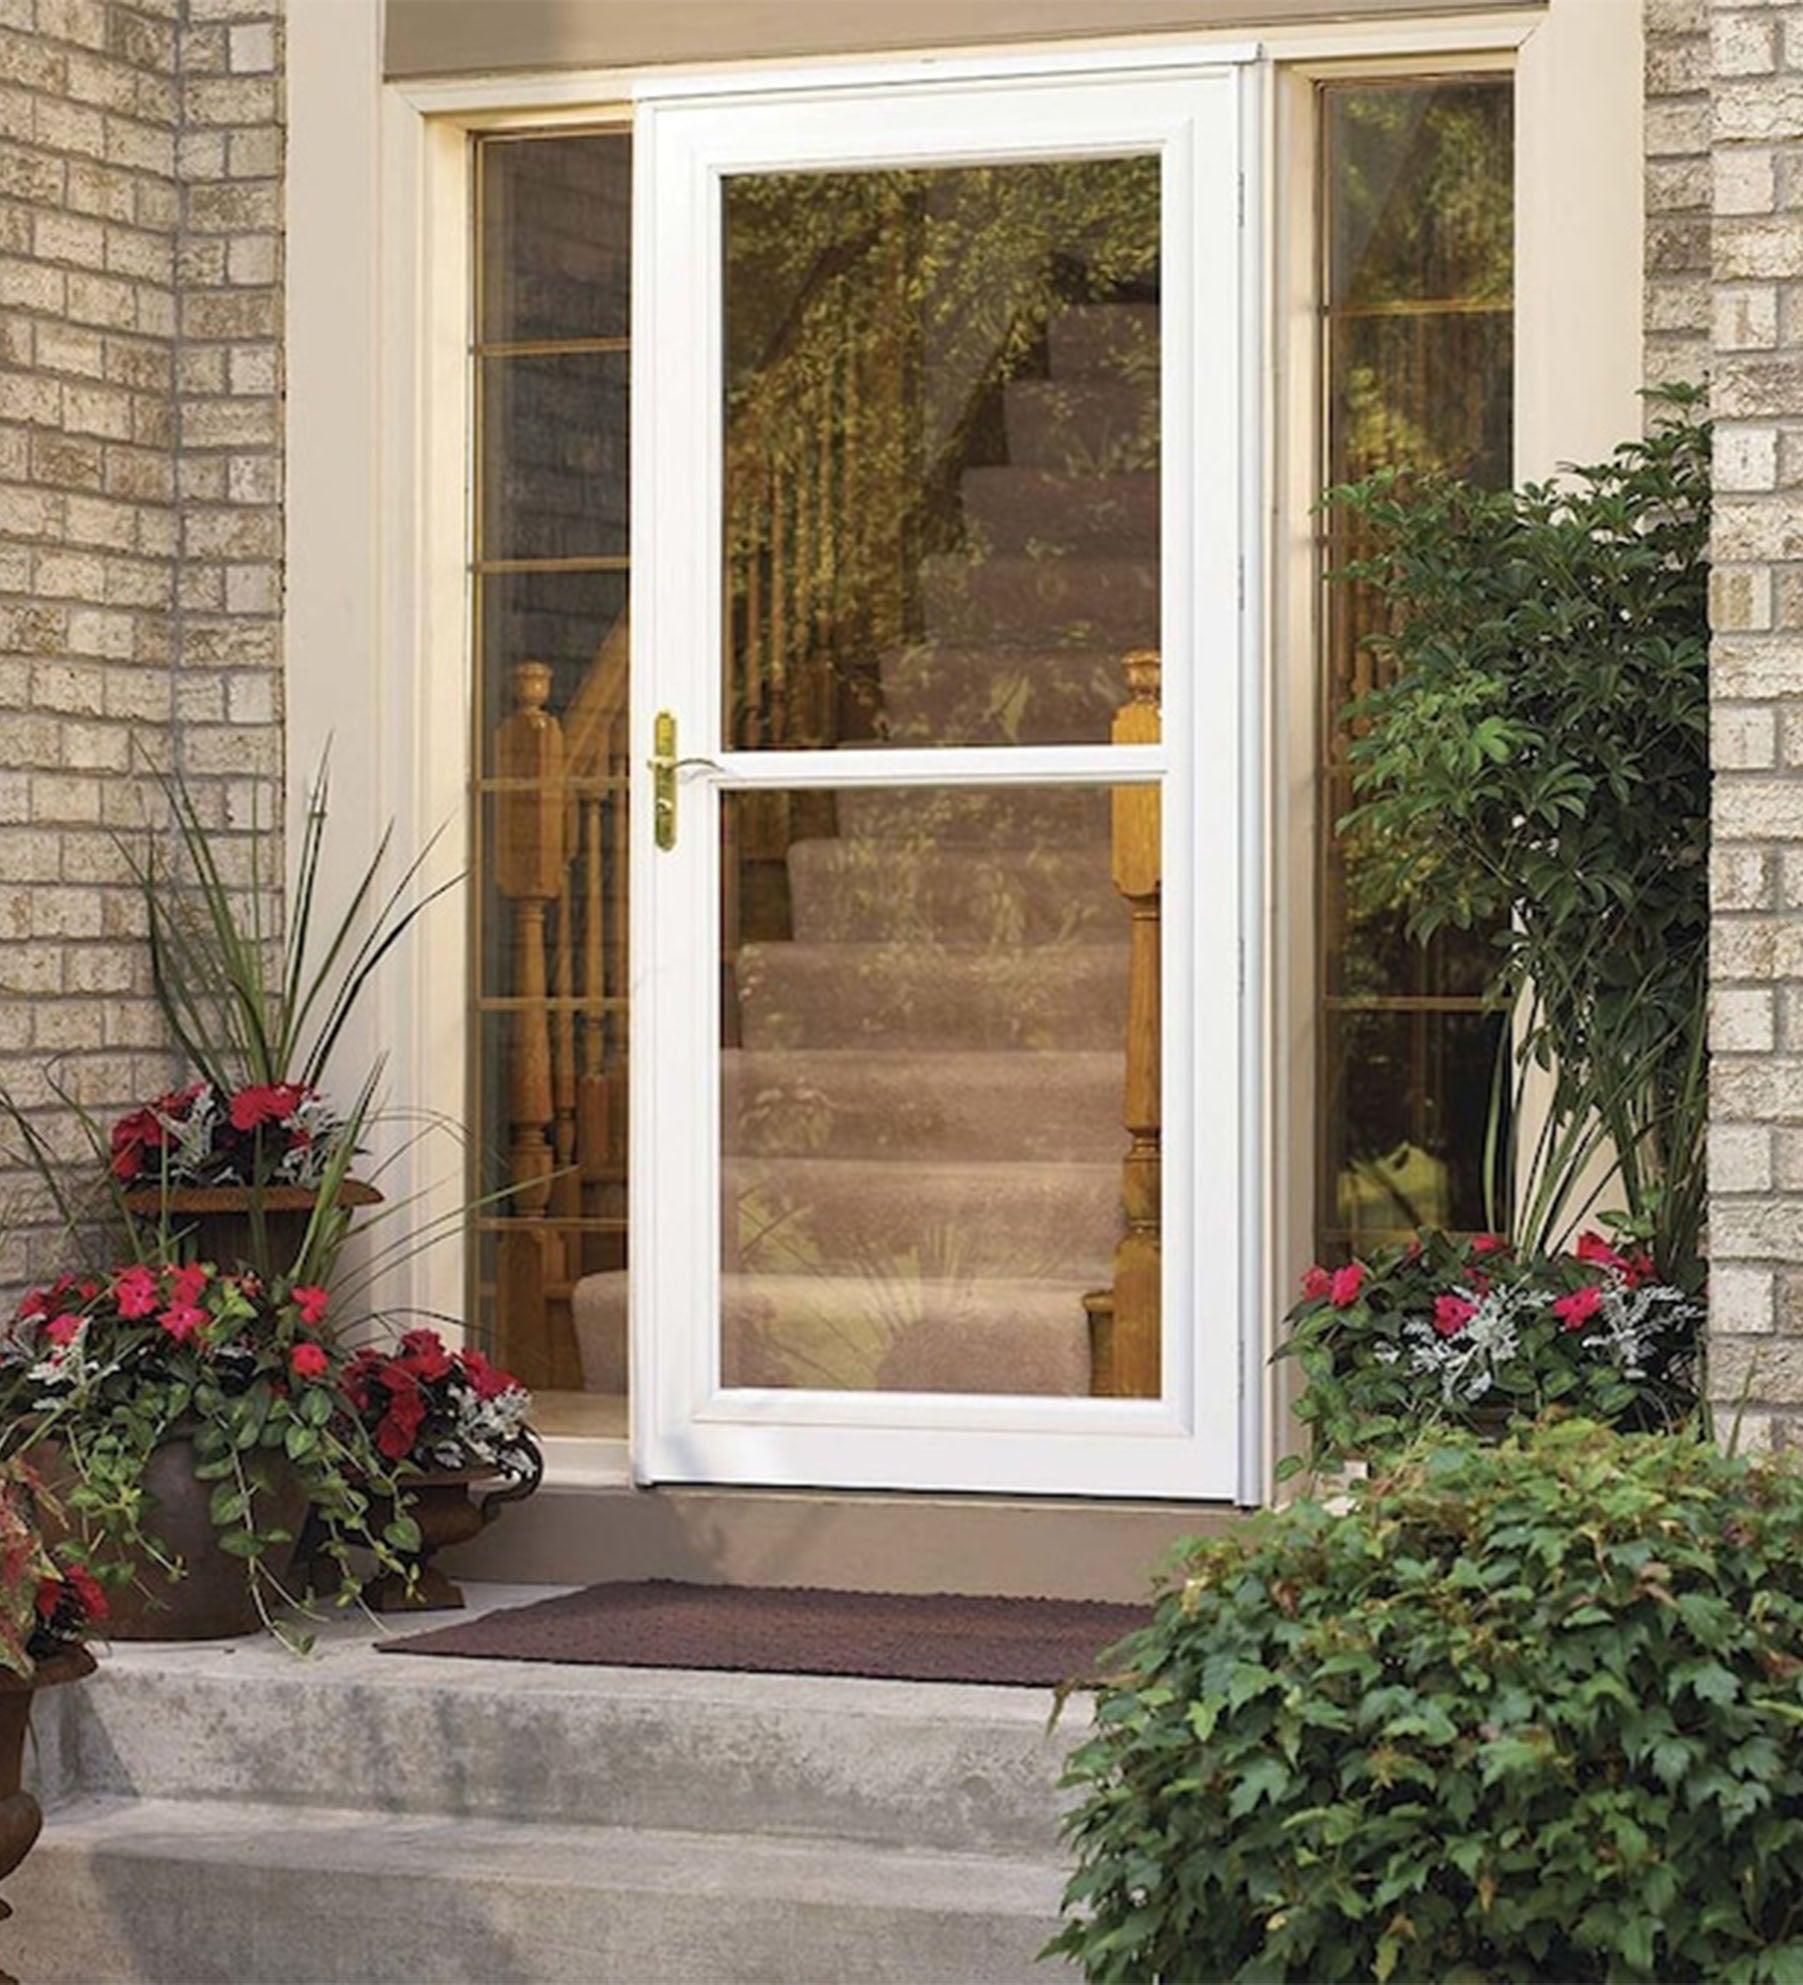 INSTALLED Larson Life Style Full-View Storm Door w/ Hardware STARTING $562.99